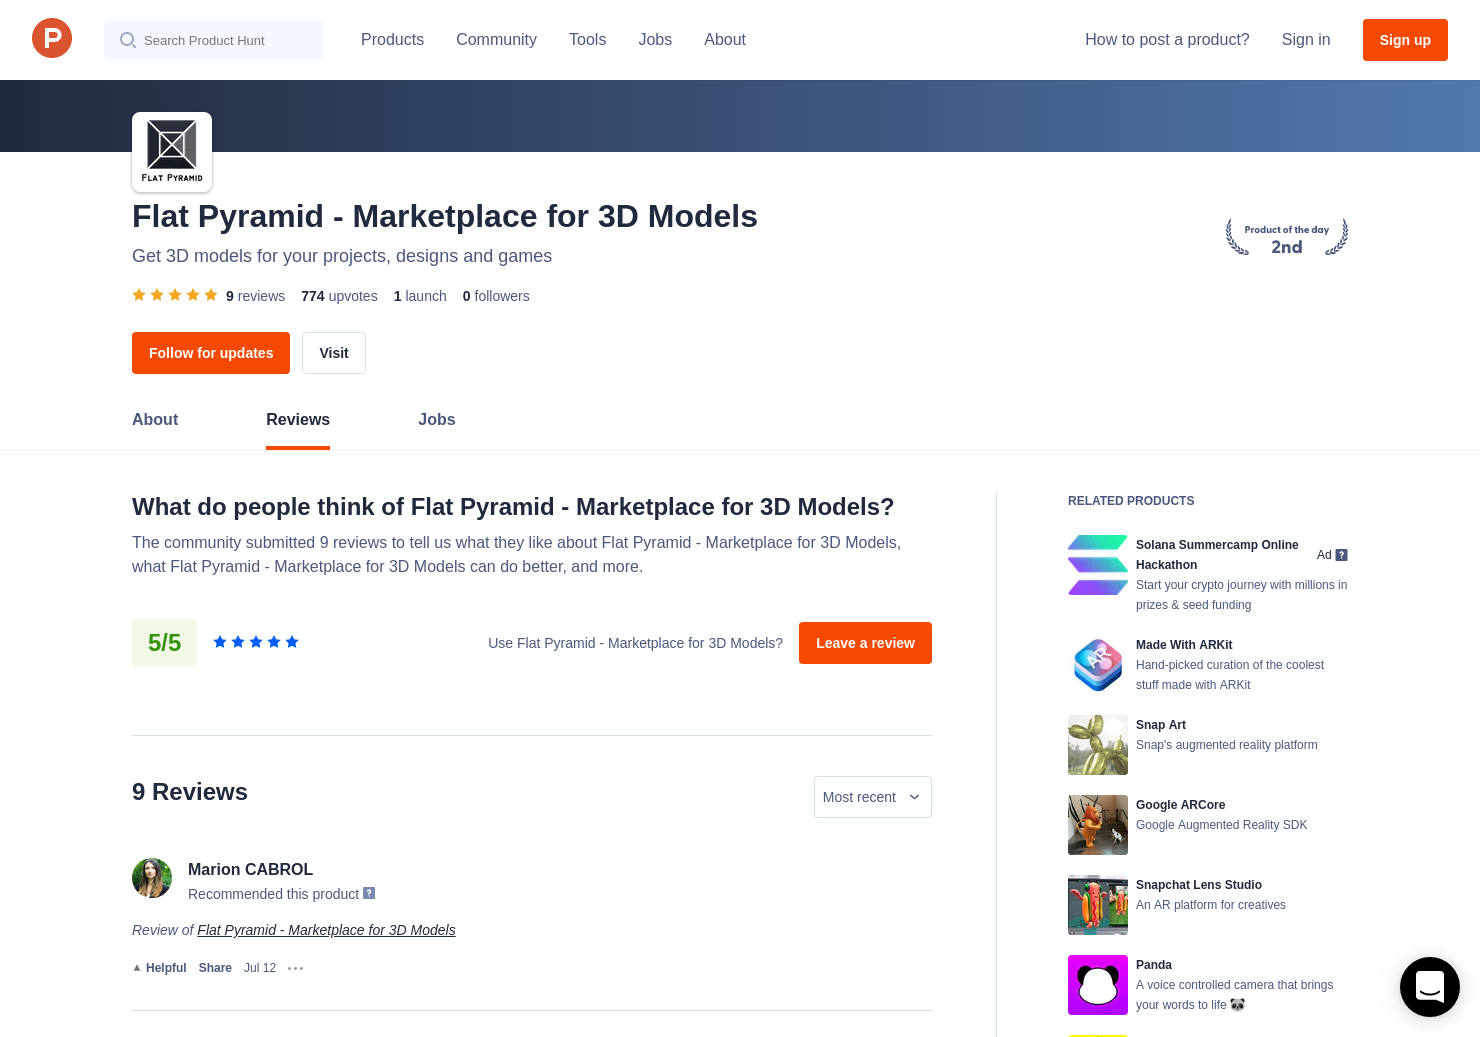 7 Flat Pyramid - Marketplace for 3D Models Reviews - Pros